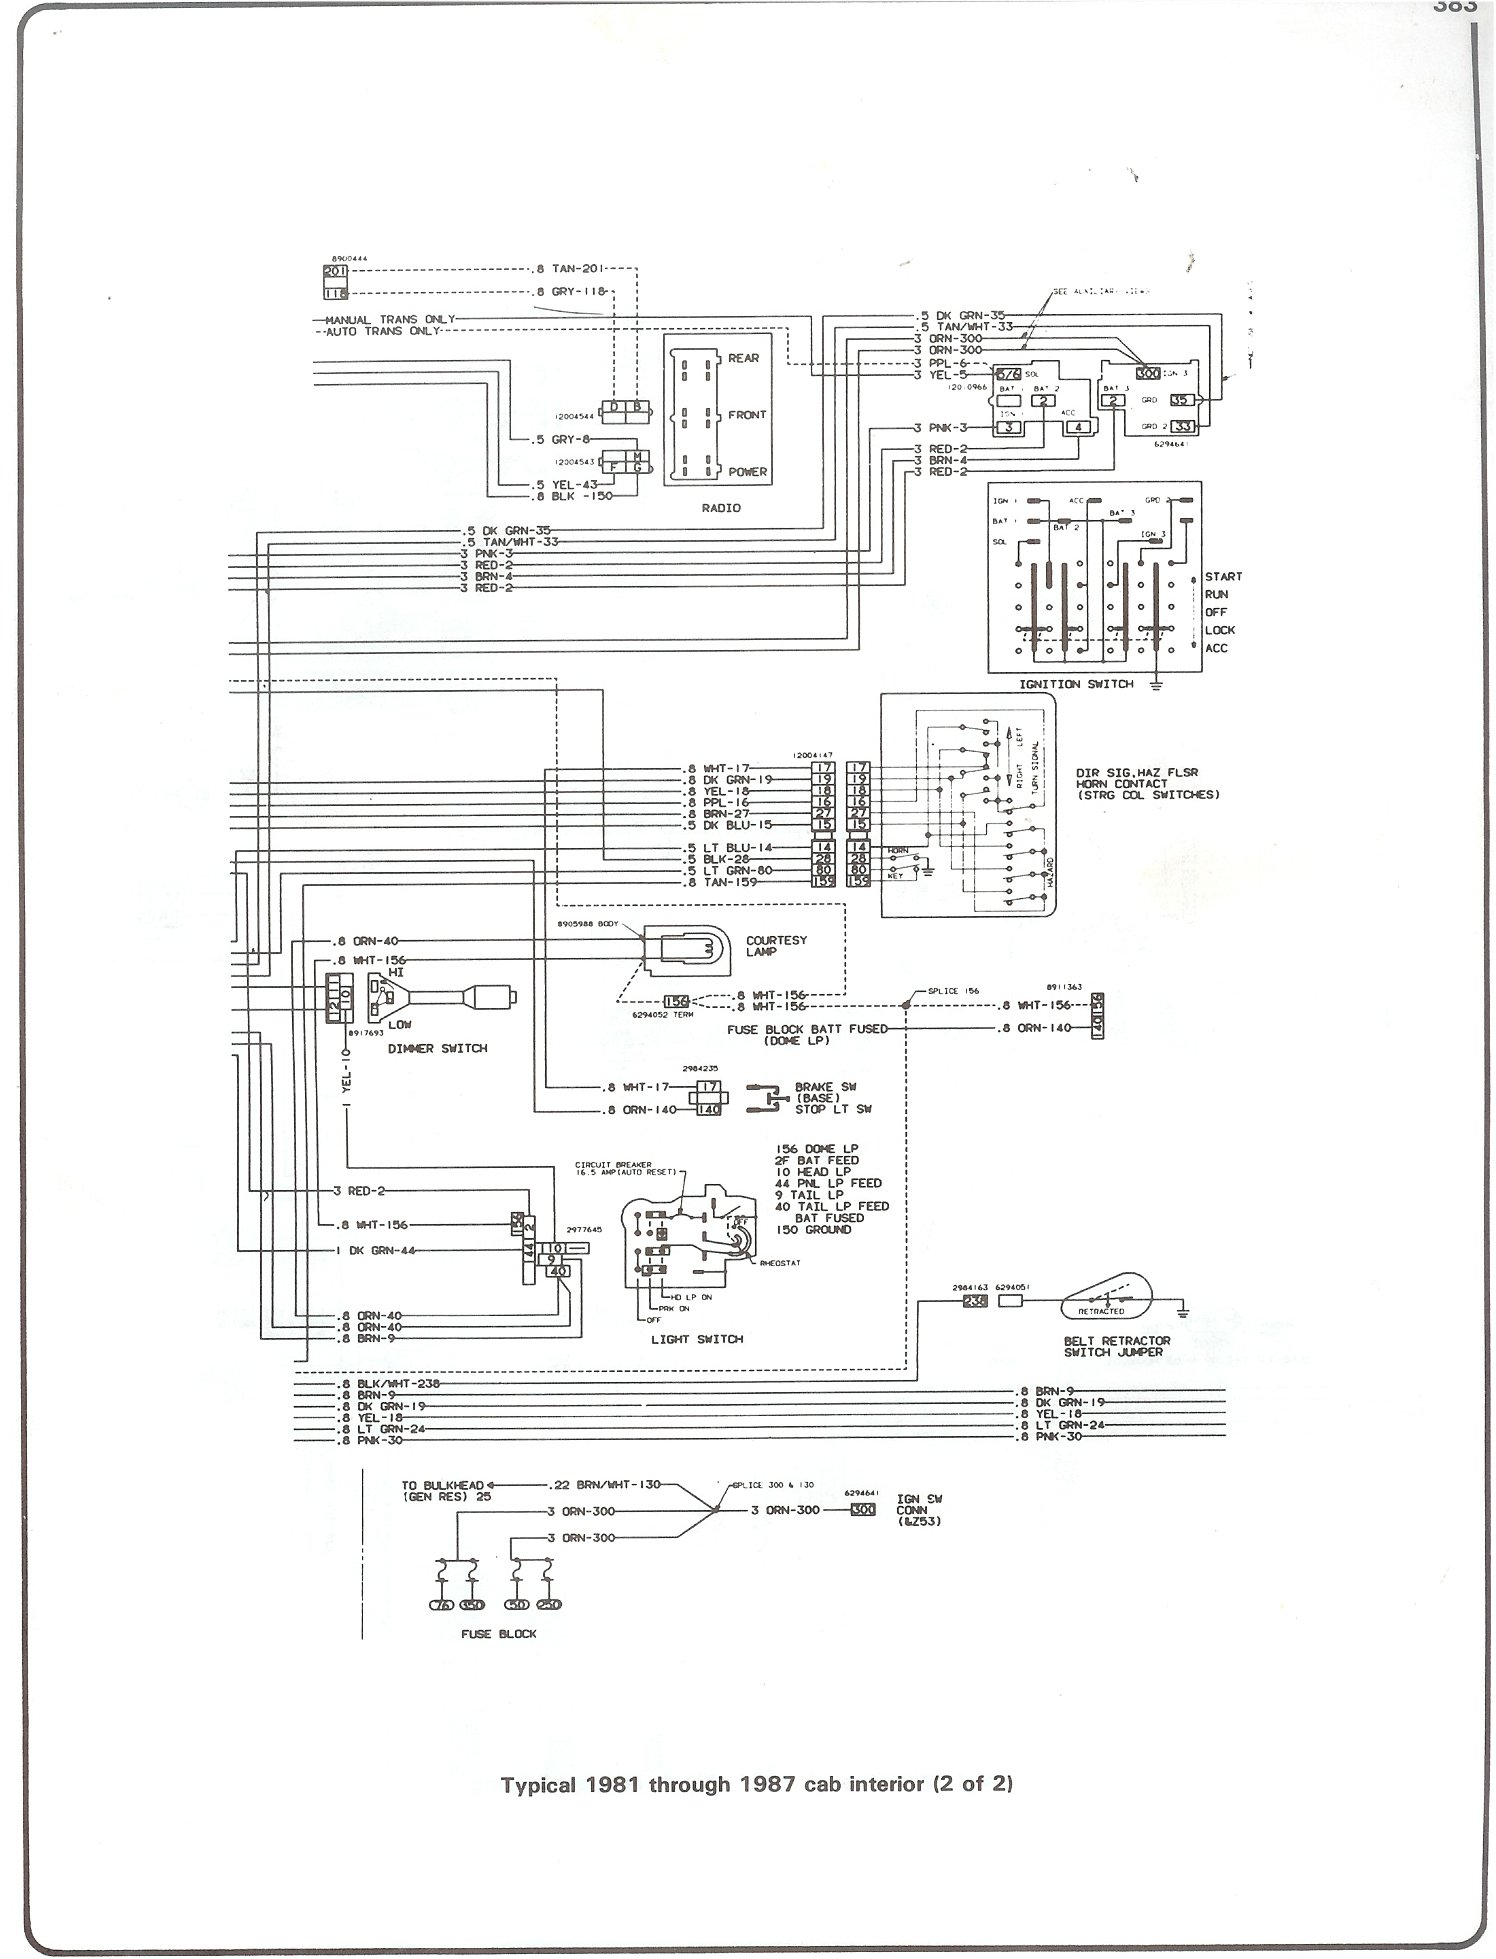 81 87_cab_inter_pg2 complete 73 87 wiring diagrams Single Phase Compressor Wiring Diagram at bayanpartner.co